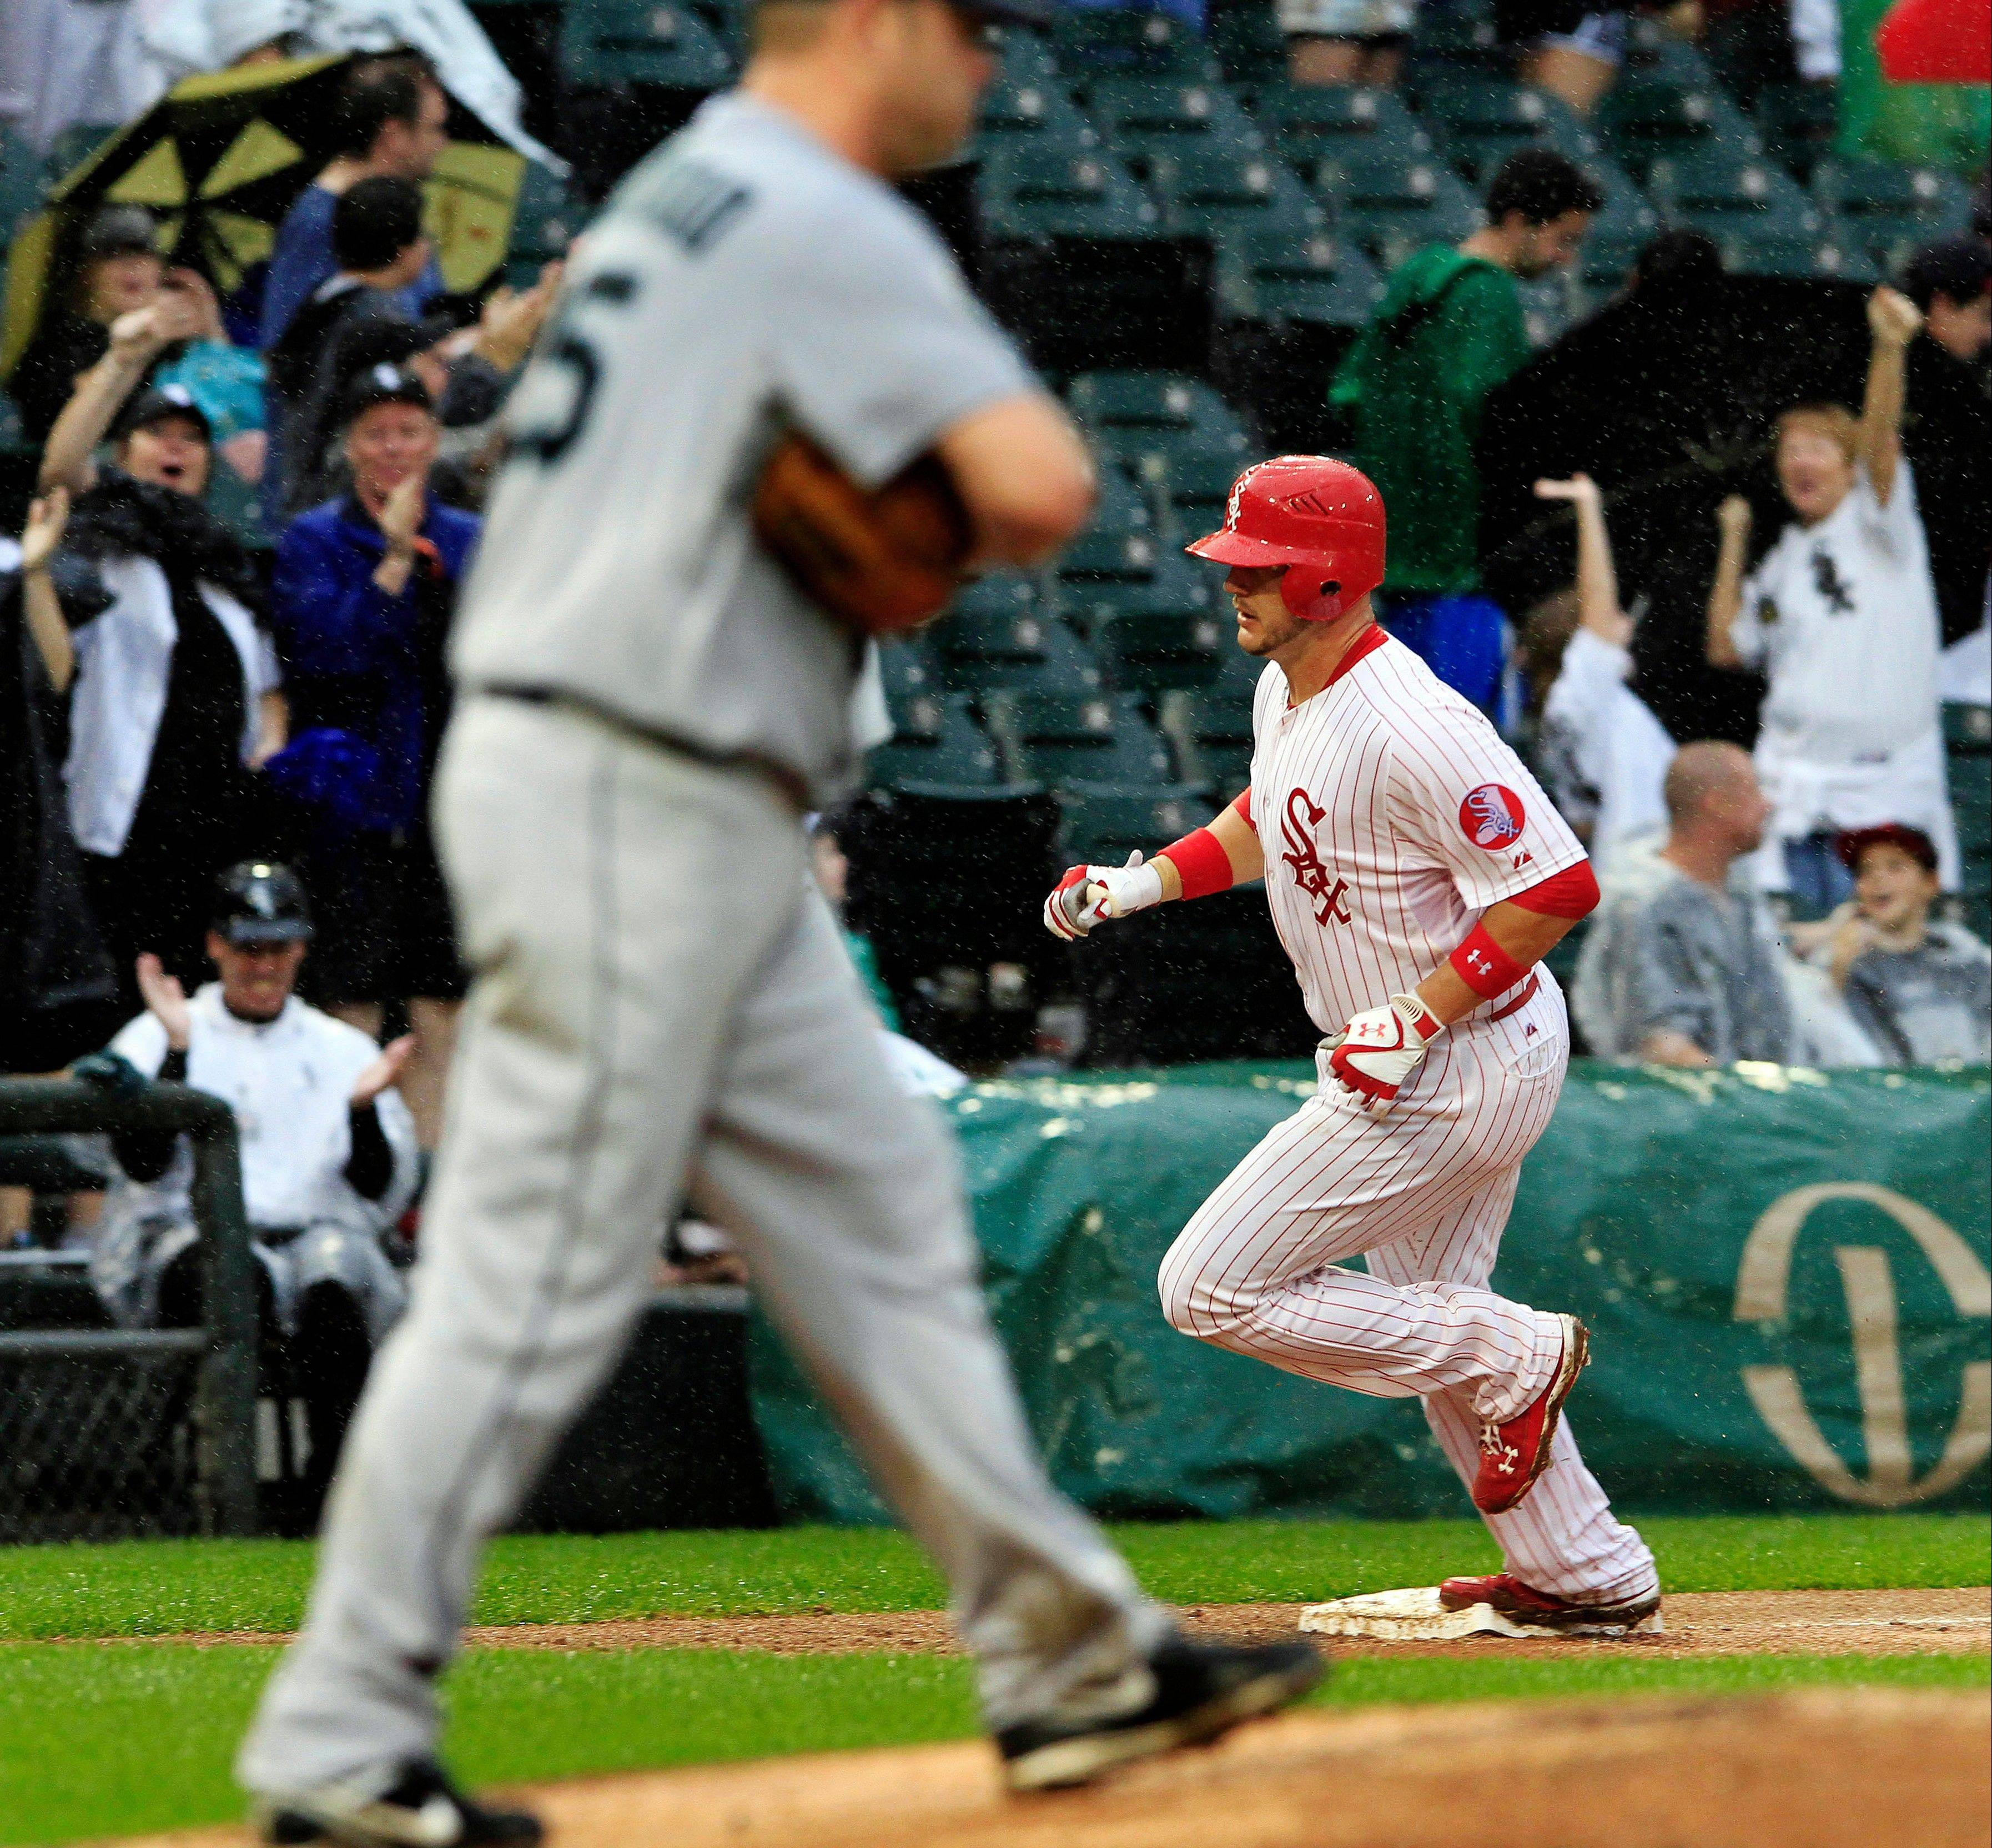 White Sox catcher Tyler Flowers rounds third after hitting what proved to be a game-winning 2-run homer off Mariners pitcherKevin Millwood in the seventh inning Sunday at U.S. Cellular Field.